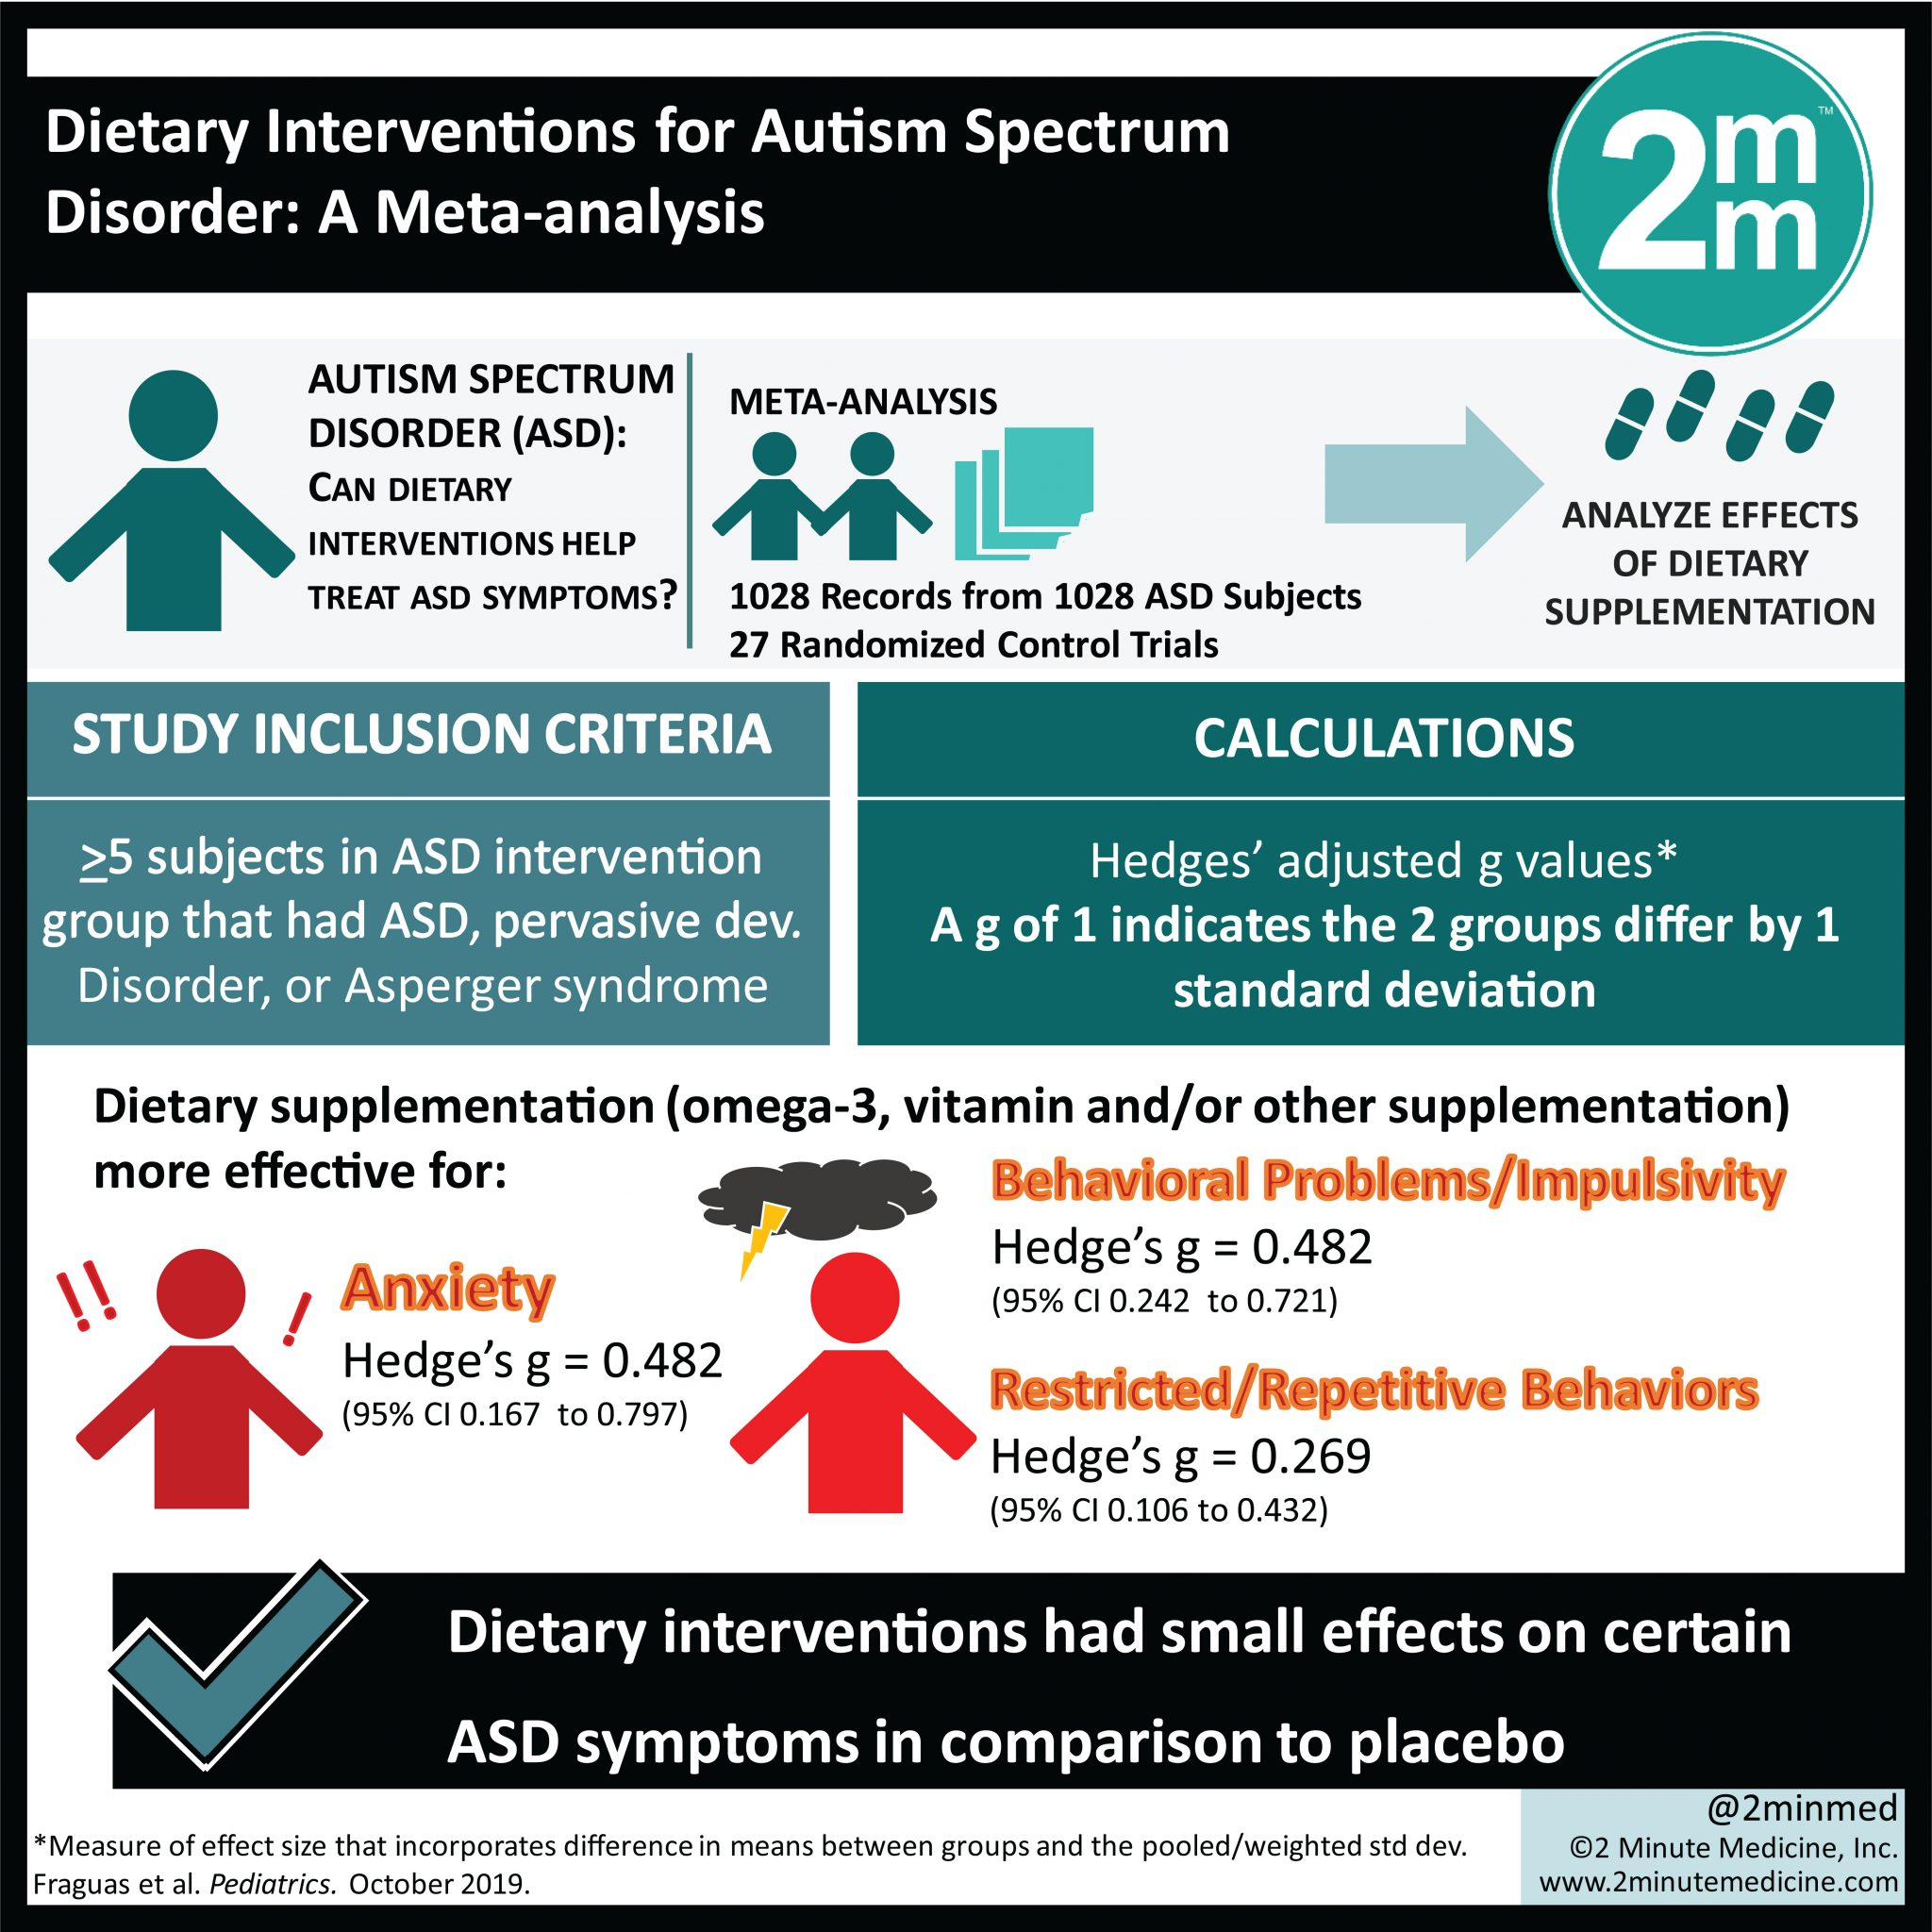 Visualabstracttary Interventions For Autism Spectrum